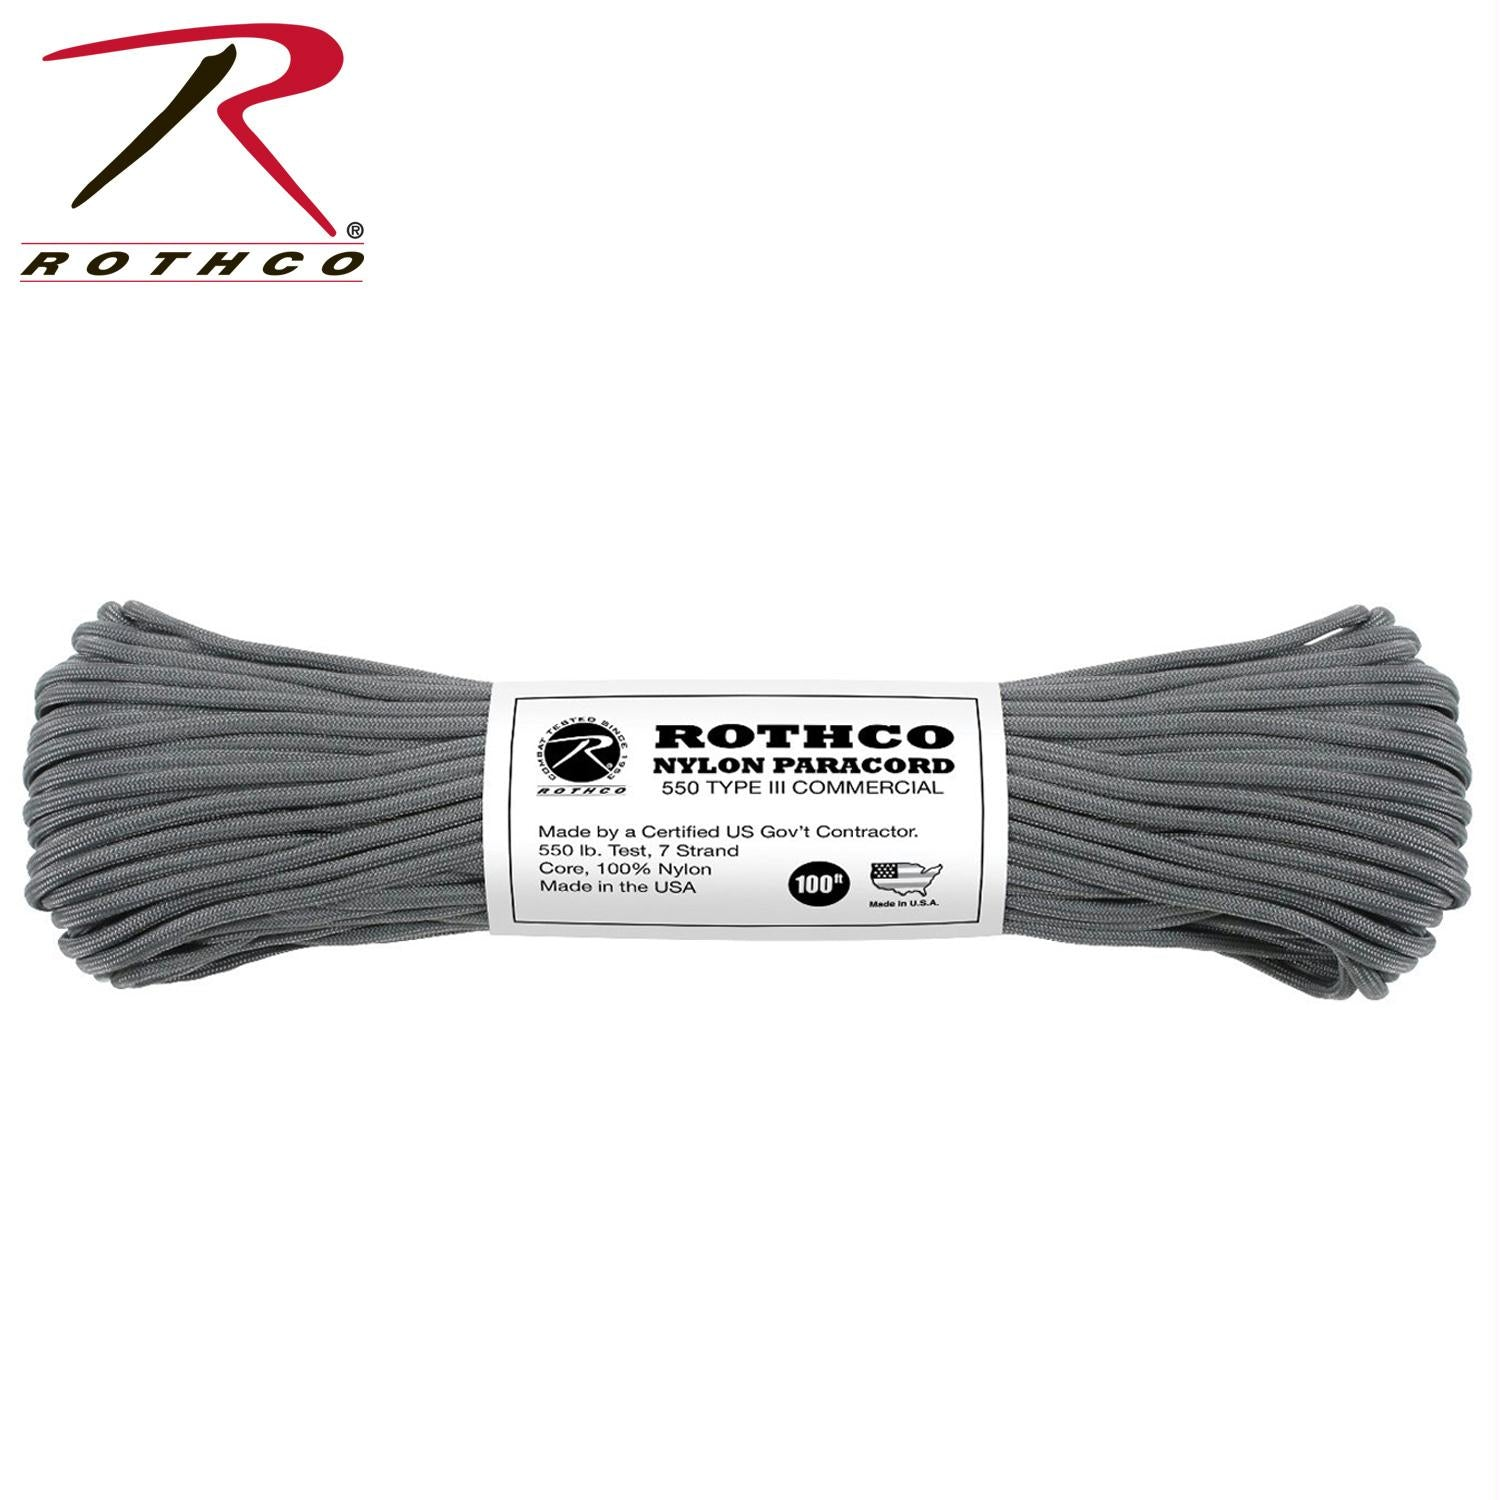 Rothco Nylon Paracord Type III 550 LB 100FT - Charcoal Grey